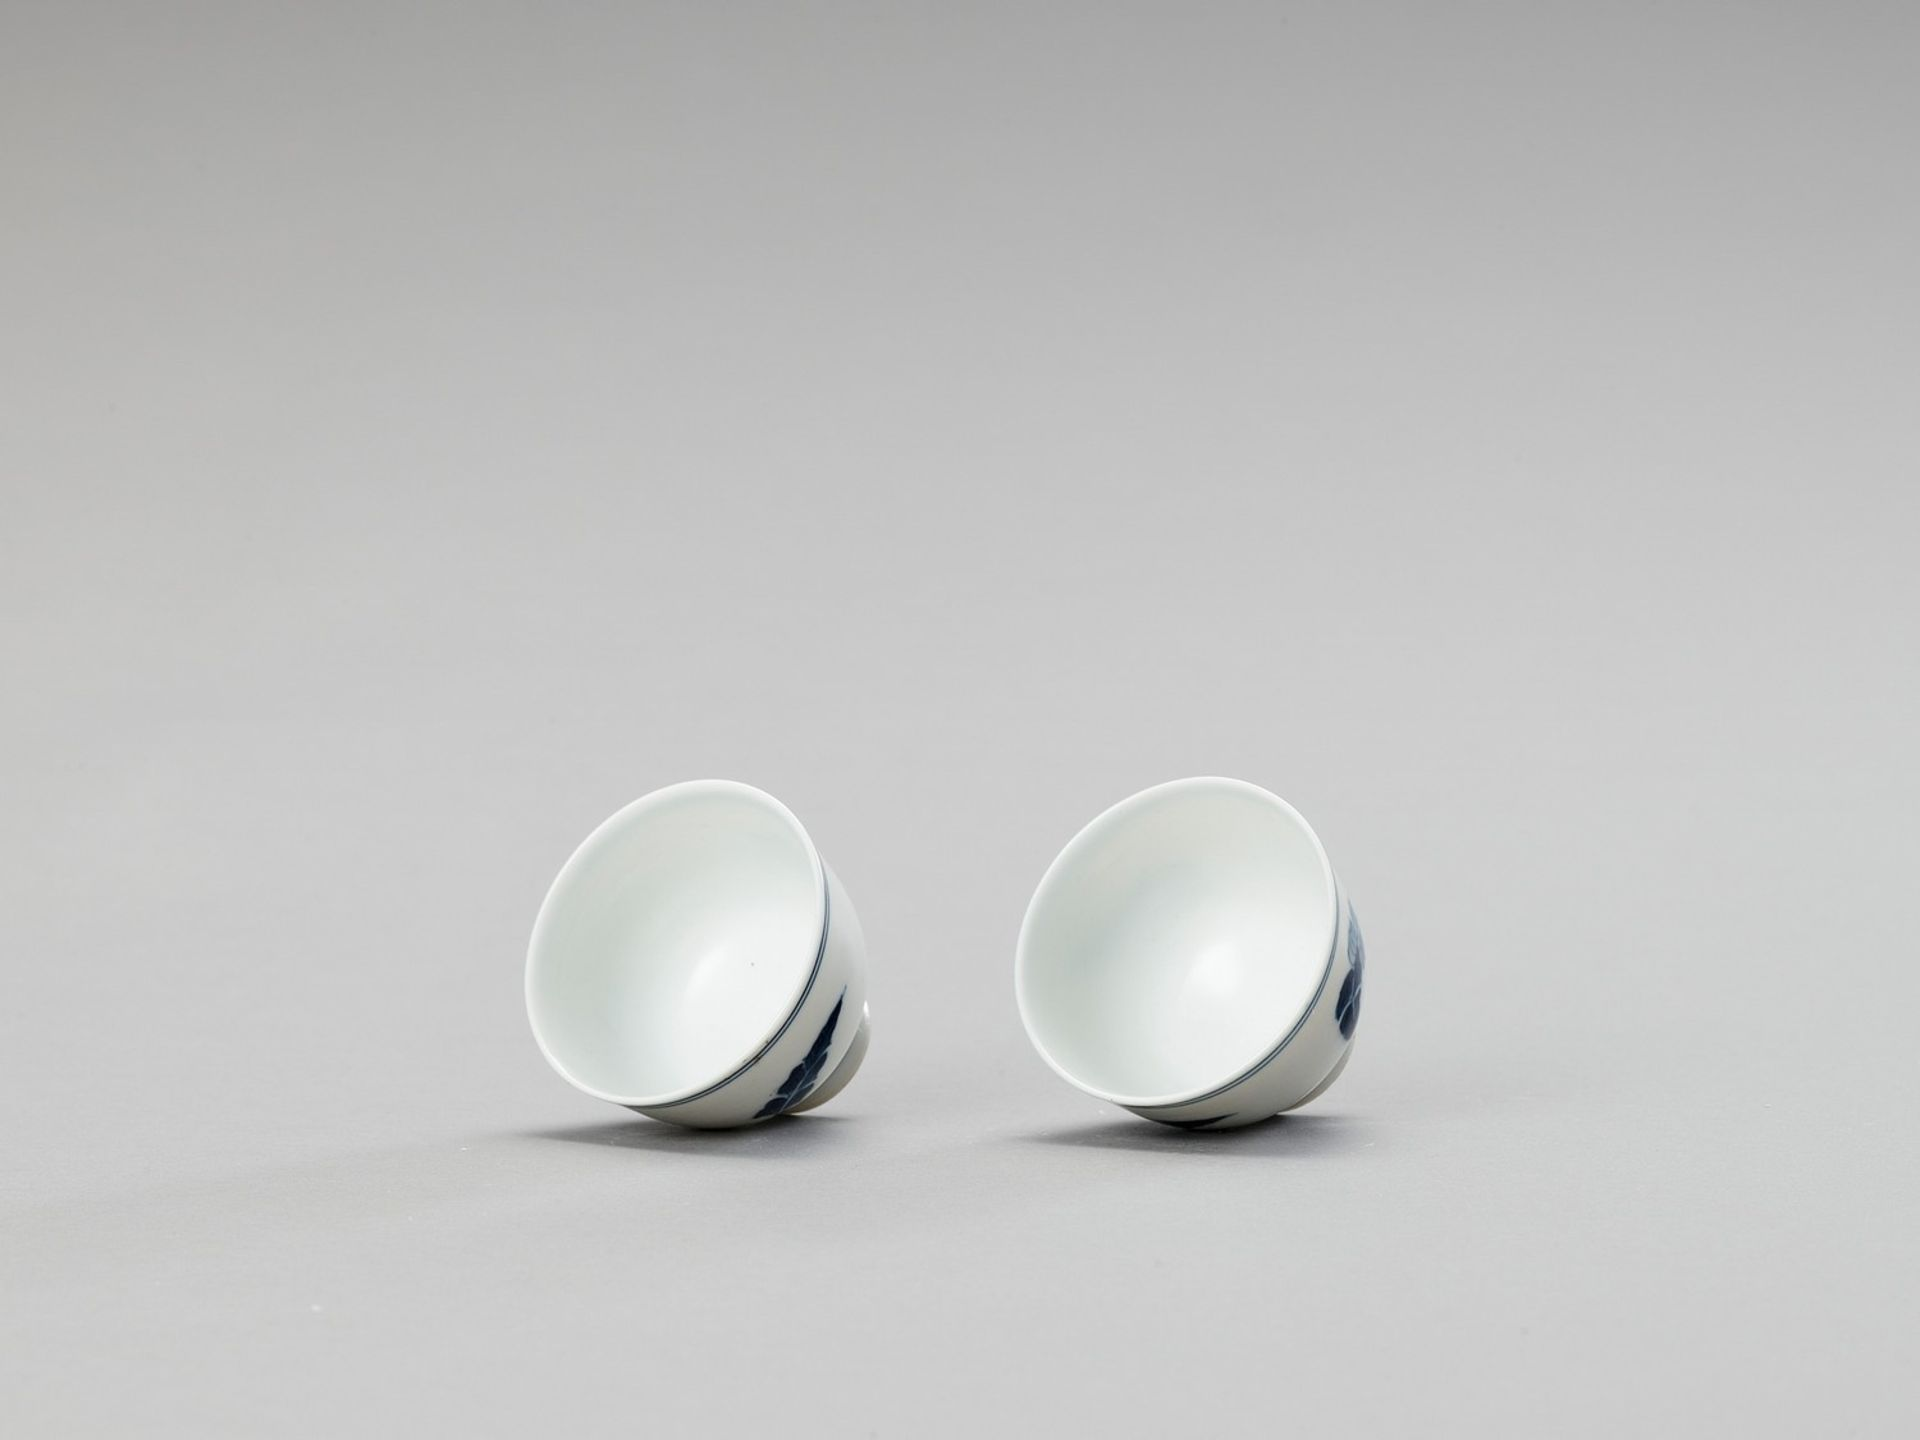 A SMALL PAIR OF BLUE AND WHITE PORCELAIN CUPS - Image 2 of 5